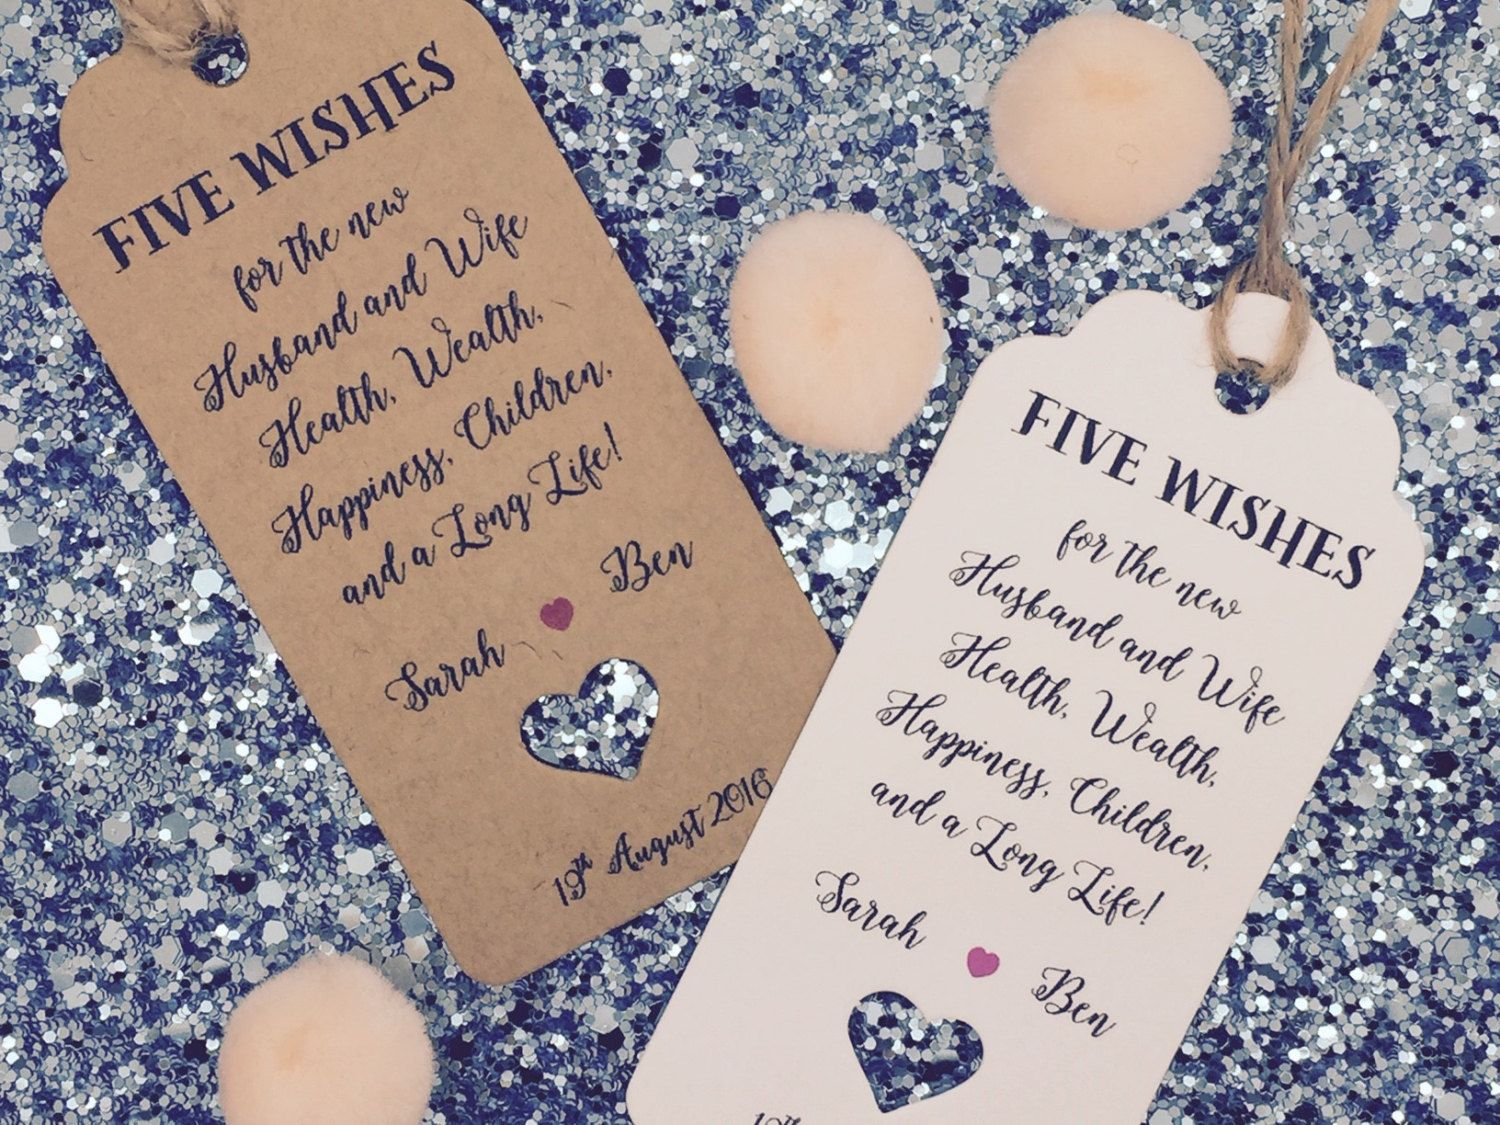 Gift Tag For Sugared Almond Wedding Favour Poem Traditional Italian Favours Almond Wedding Favours Wedding Favor Gift Tags Wedding Gift Favors